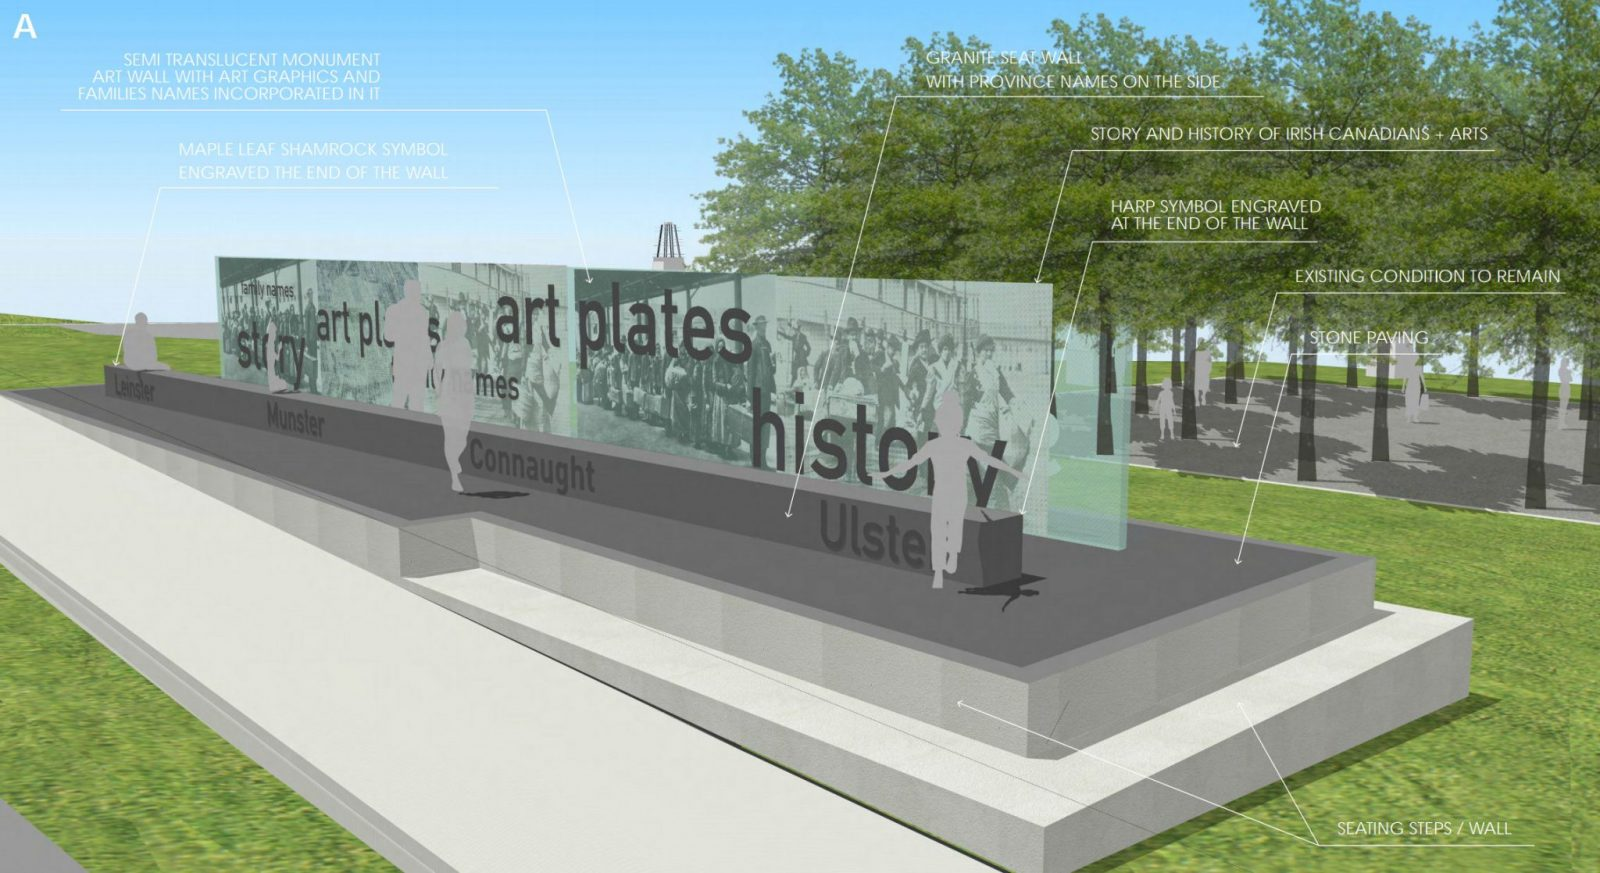 Two designs for proposed Ireland Canada monument in Vancouver revealed